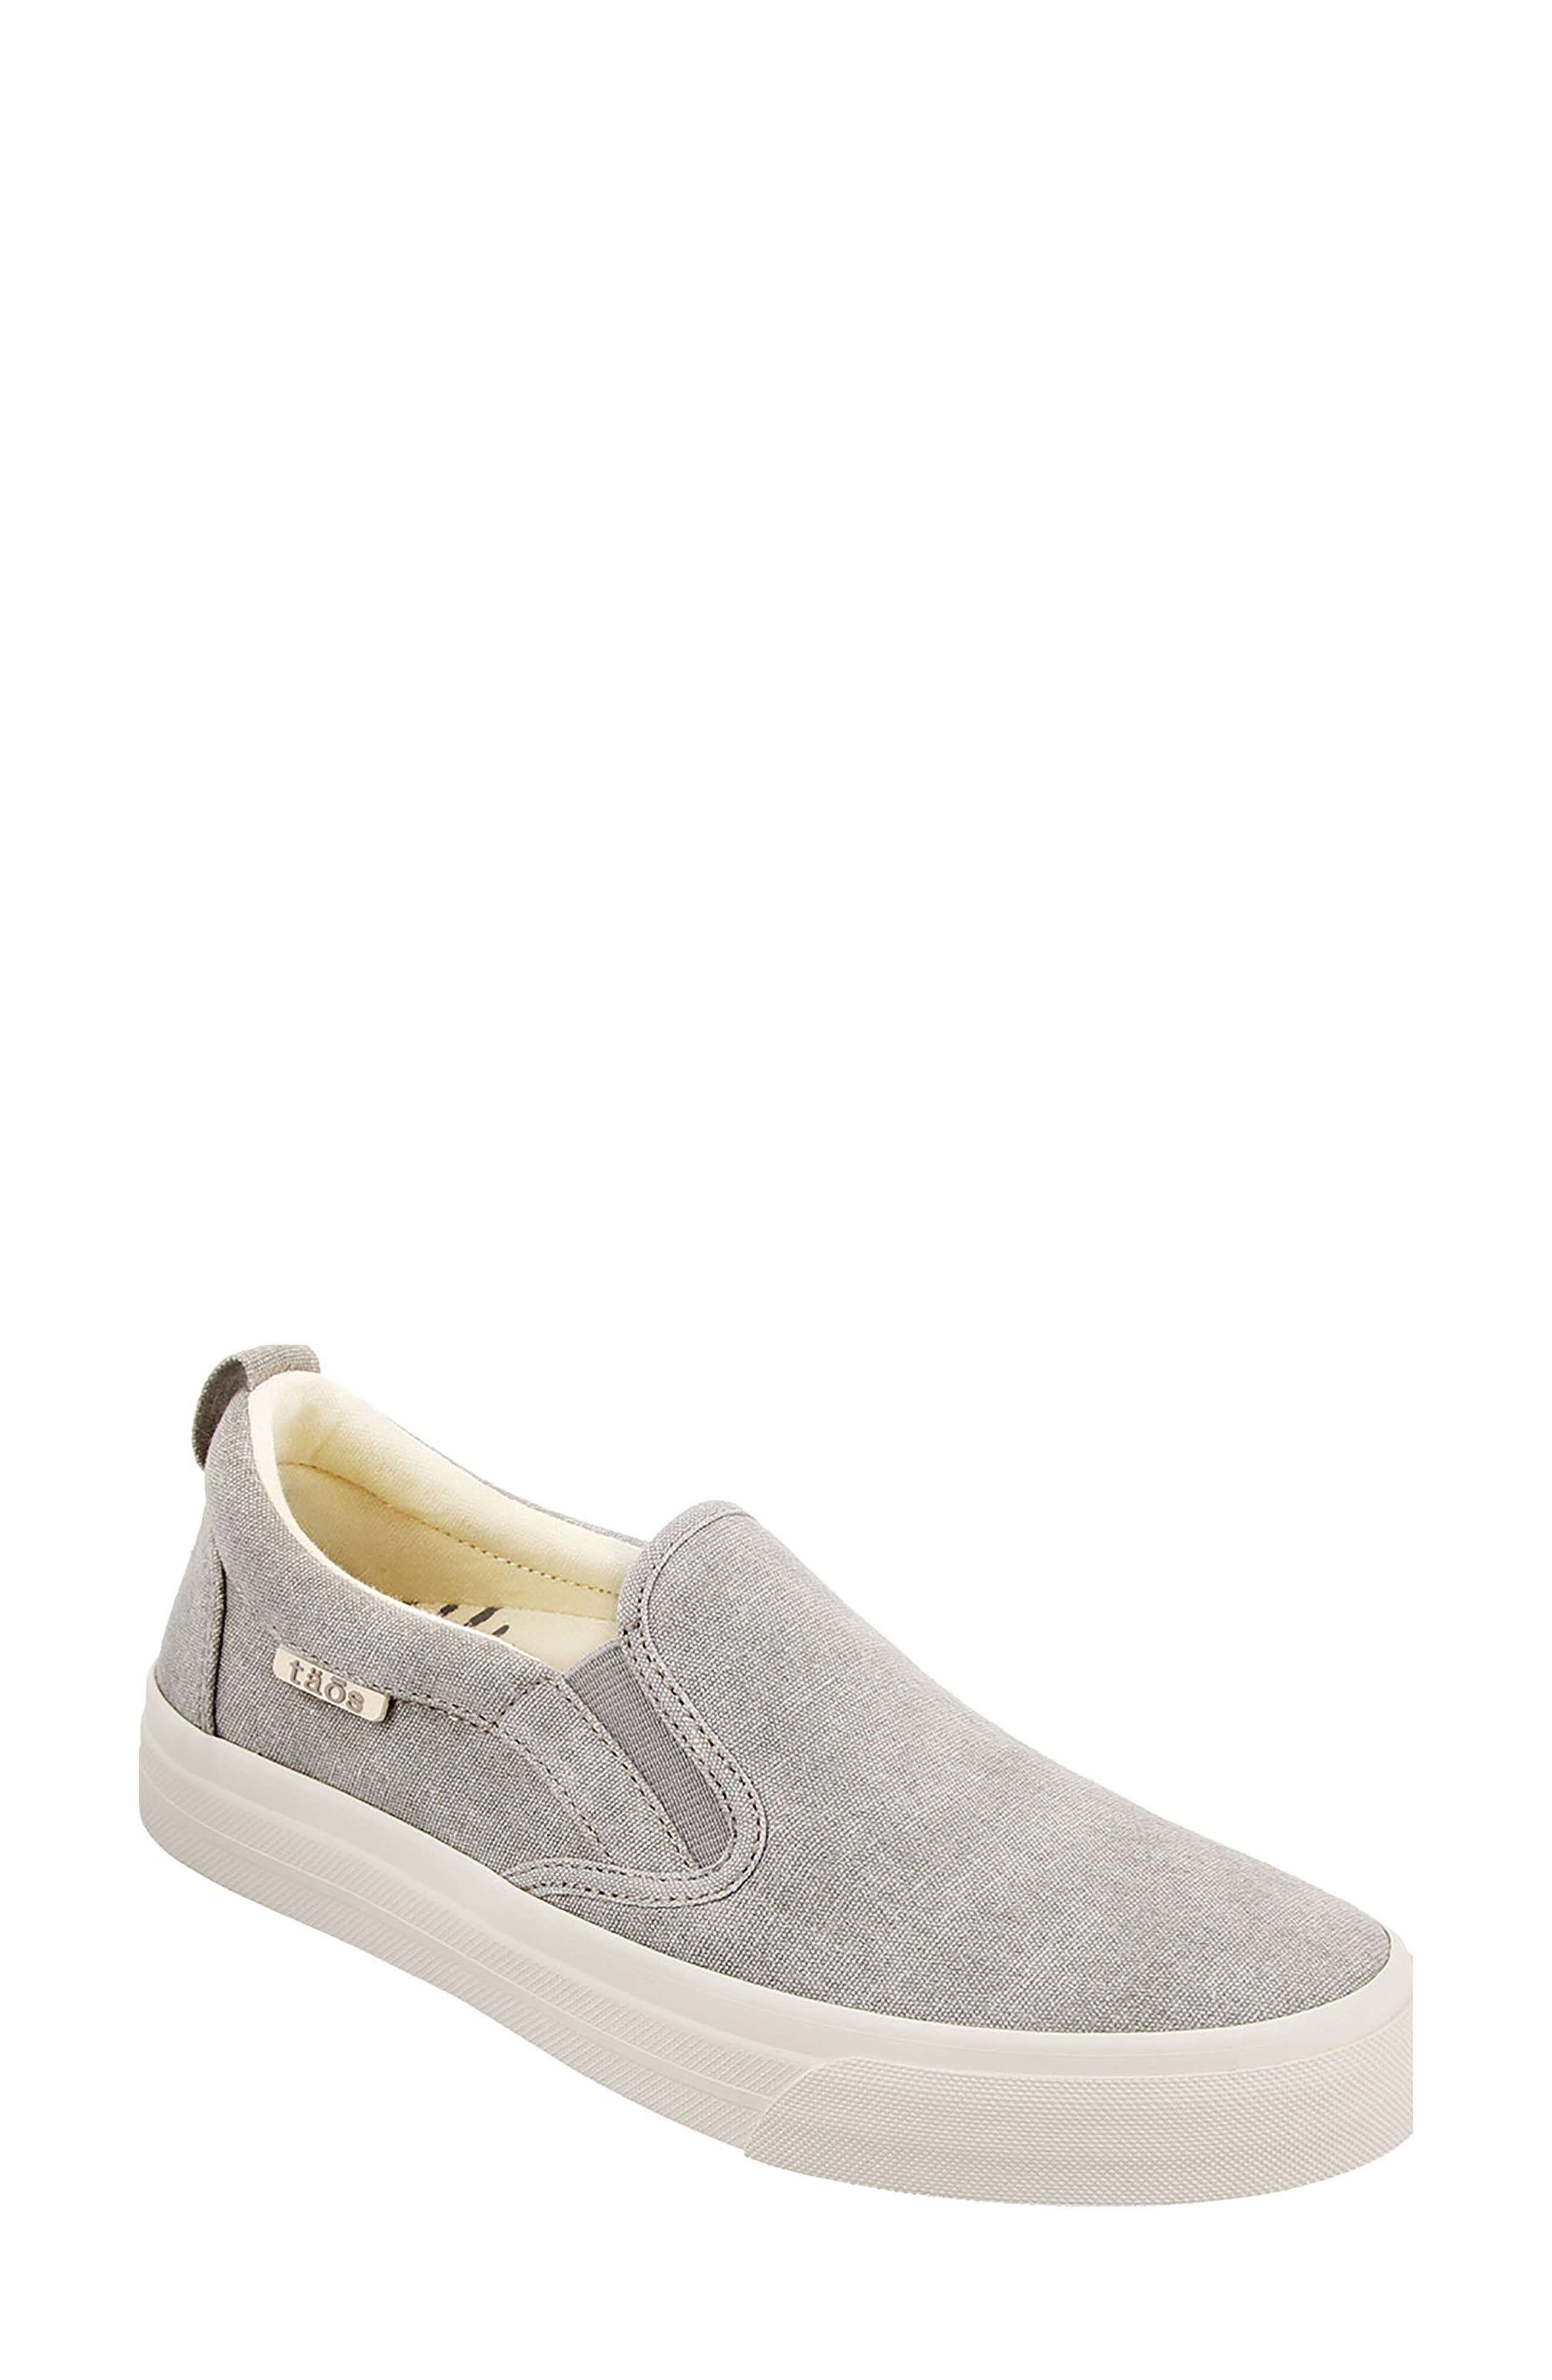 Soul Slip-On Sneaker,                             Main thumbnail 1, color,                             GREY WASH CANVAS